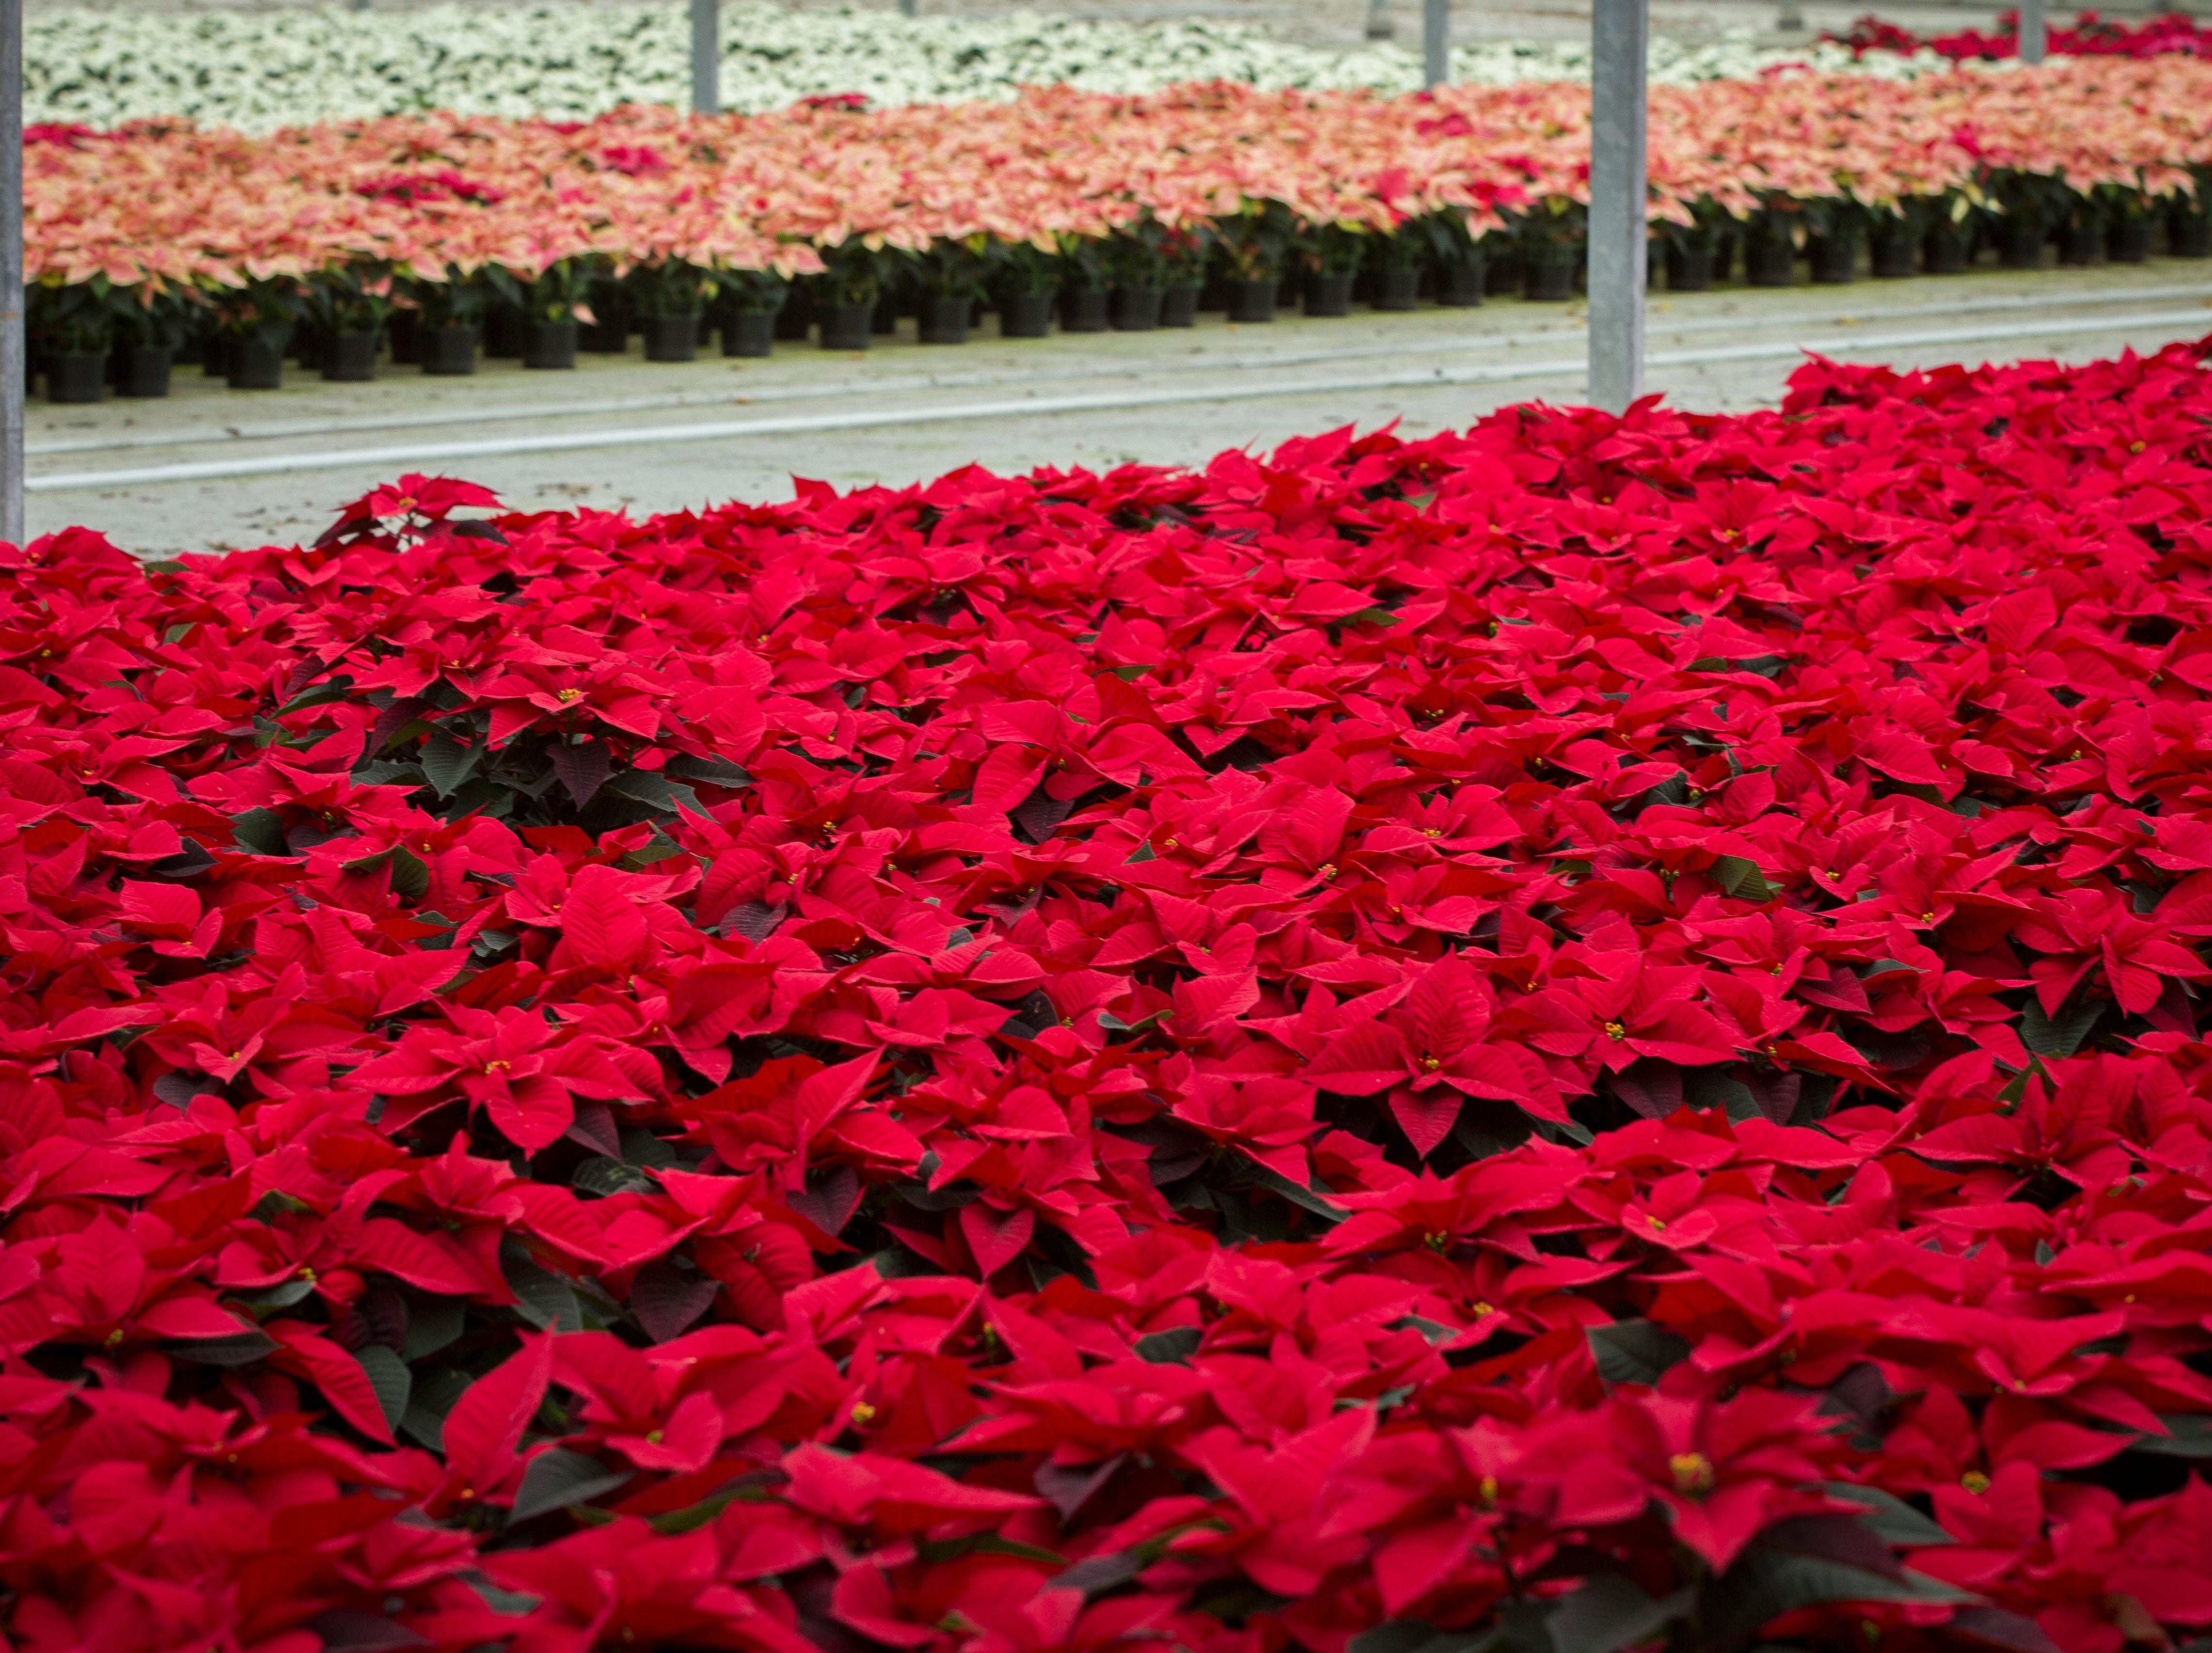 Traditional 1.5 quart red poinsettias along with other varieties are ready for packaging at Smith Gardens in Aurora, Oregon Friday November, 30, 2018. The plants will be packaged for one of the last shipments of the year in early December and be delivered to local big box stores.